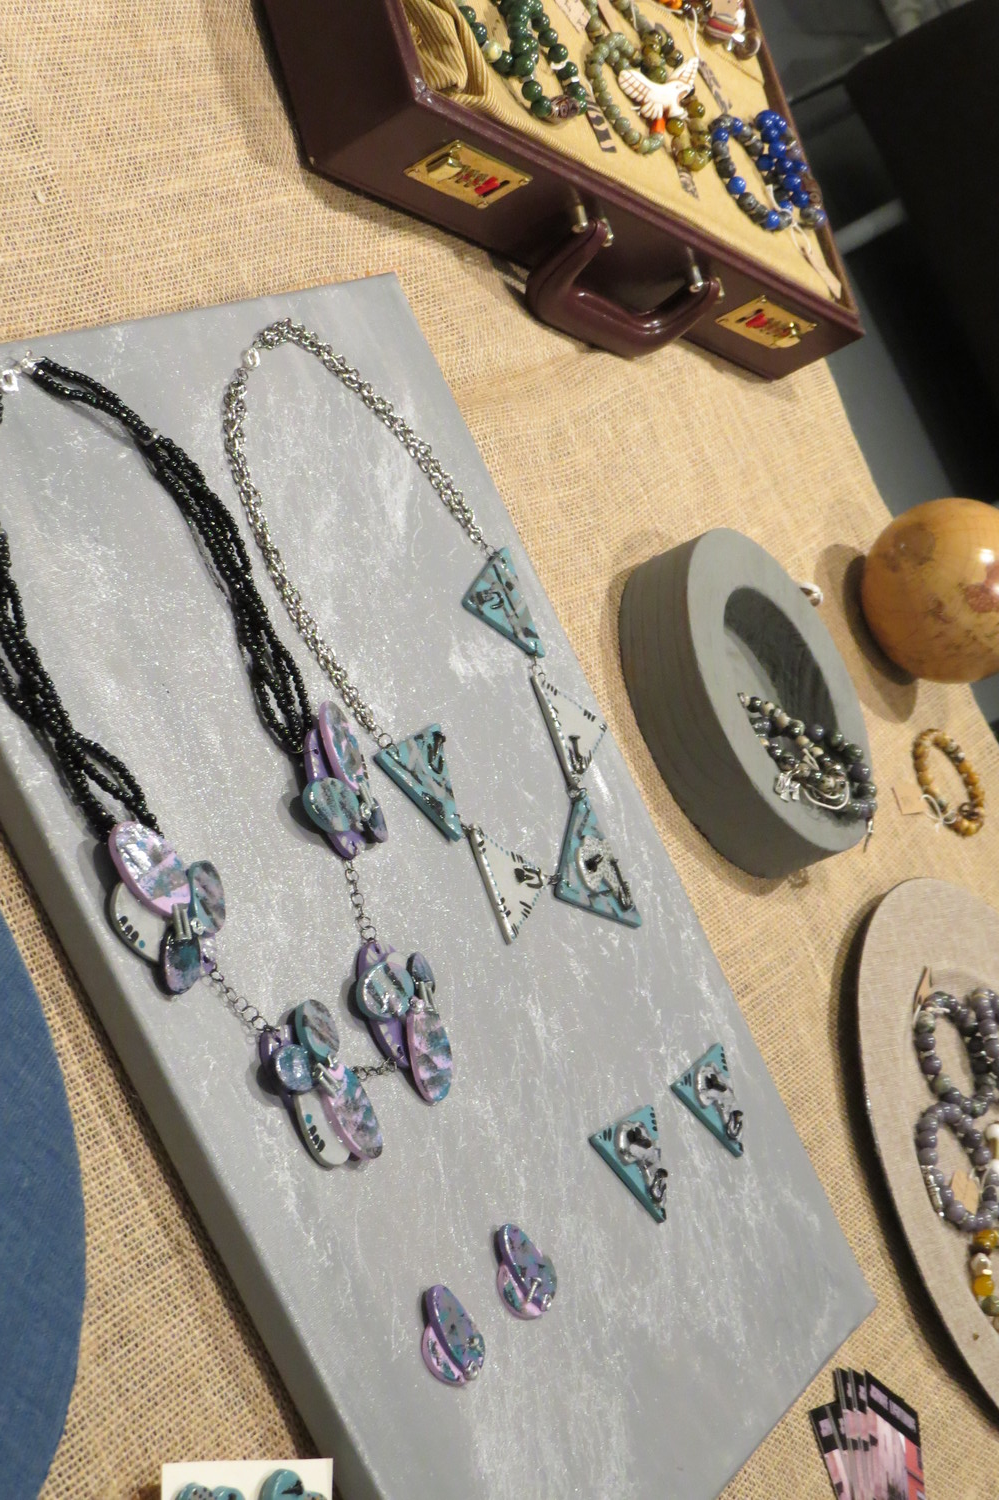 A Few of the handmade necklaces to be featured soon with DollCirca1930